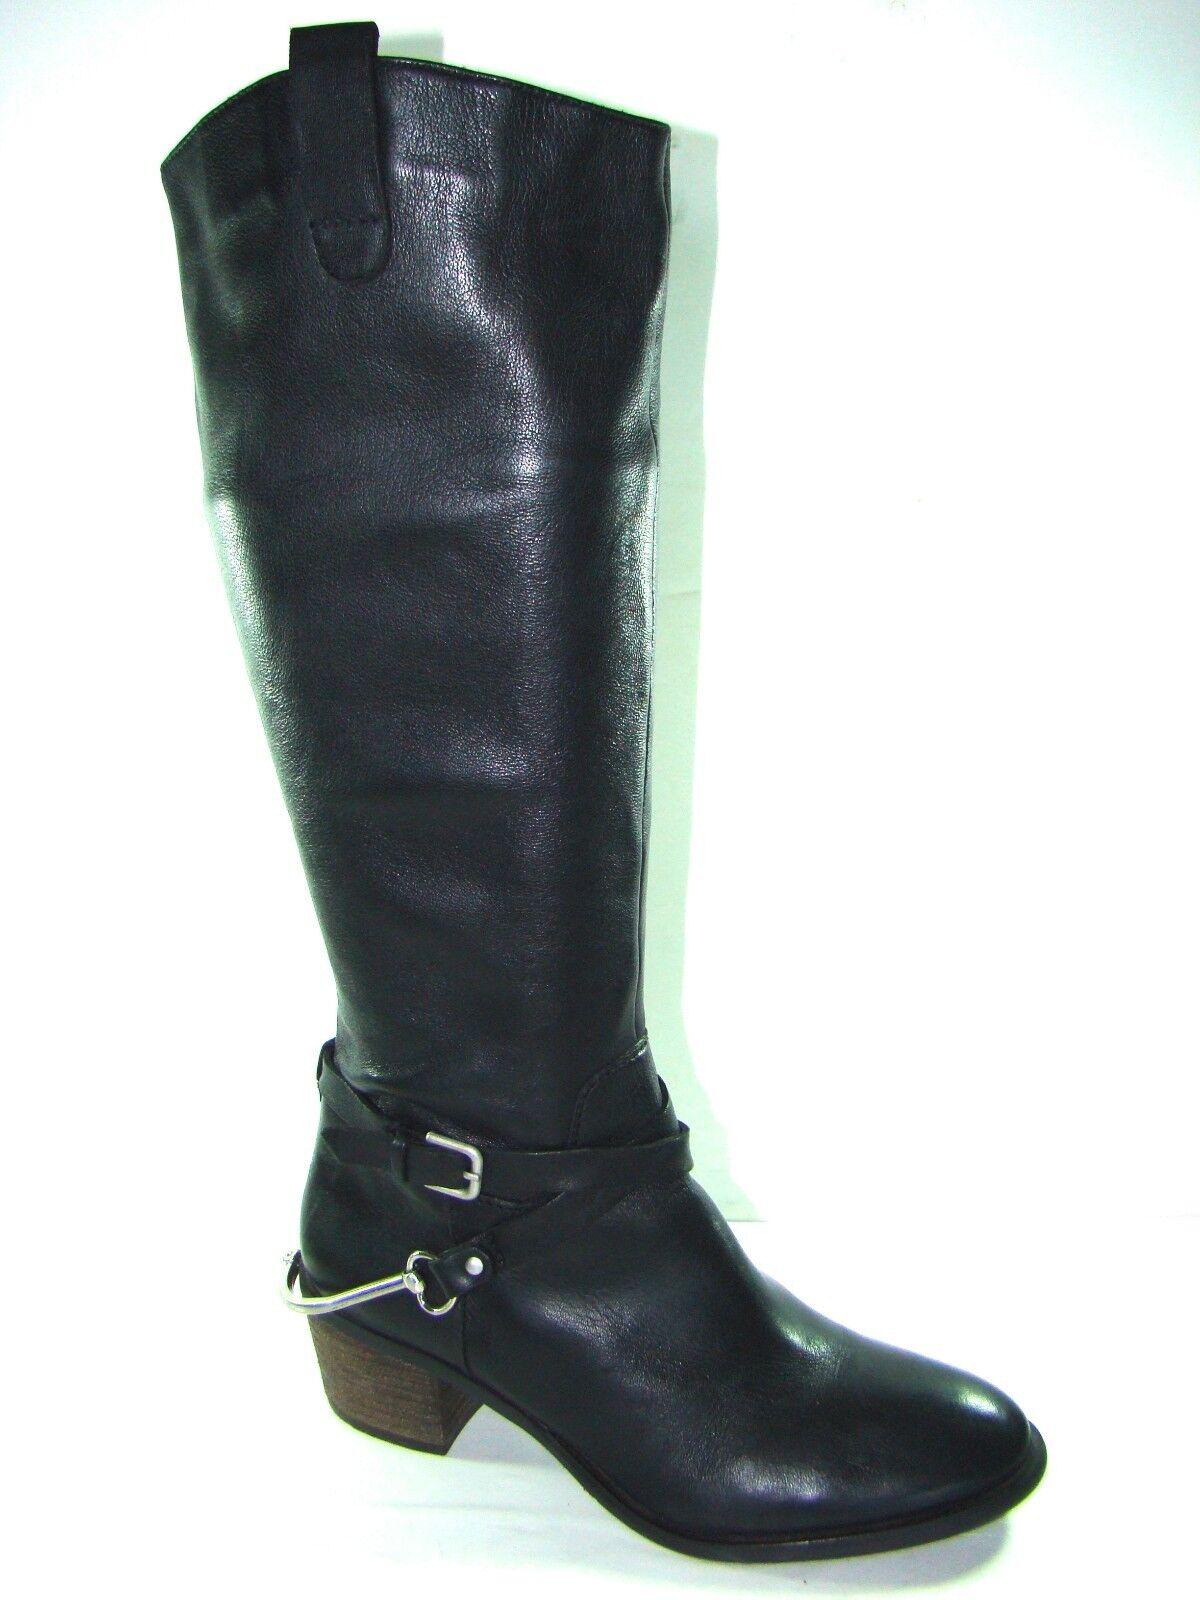 NEW Steven Steve Madden STURRIP Knee high riding style boots boots boots Black Spurs Sz 8 d0adc9